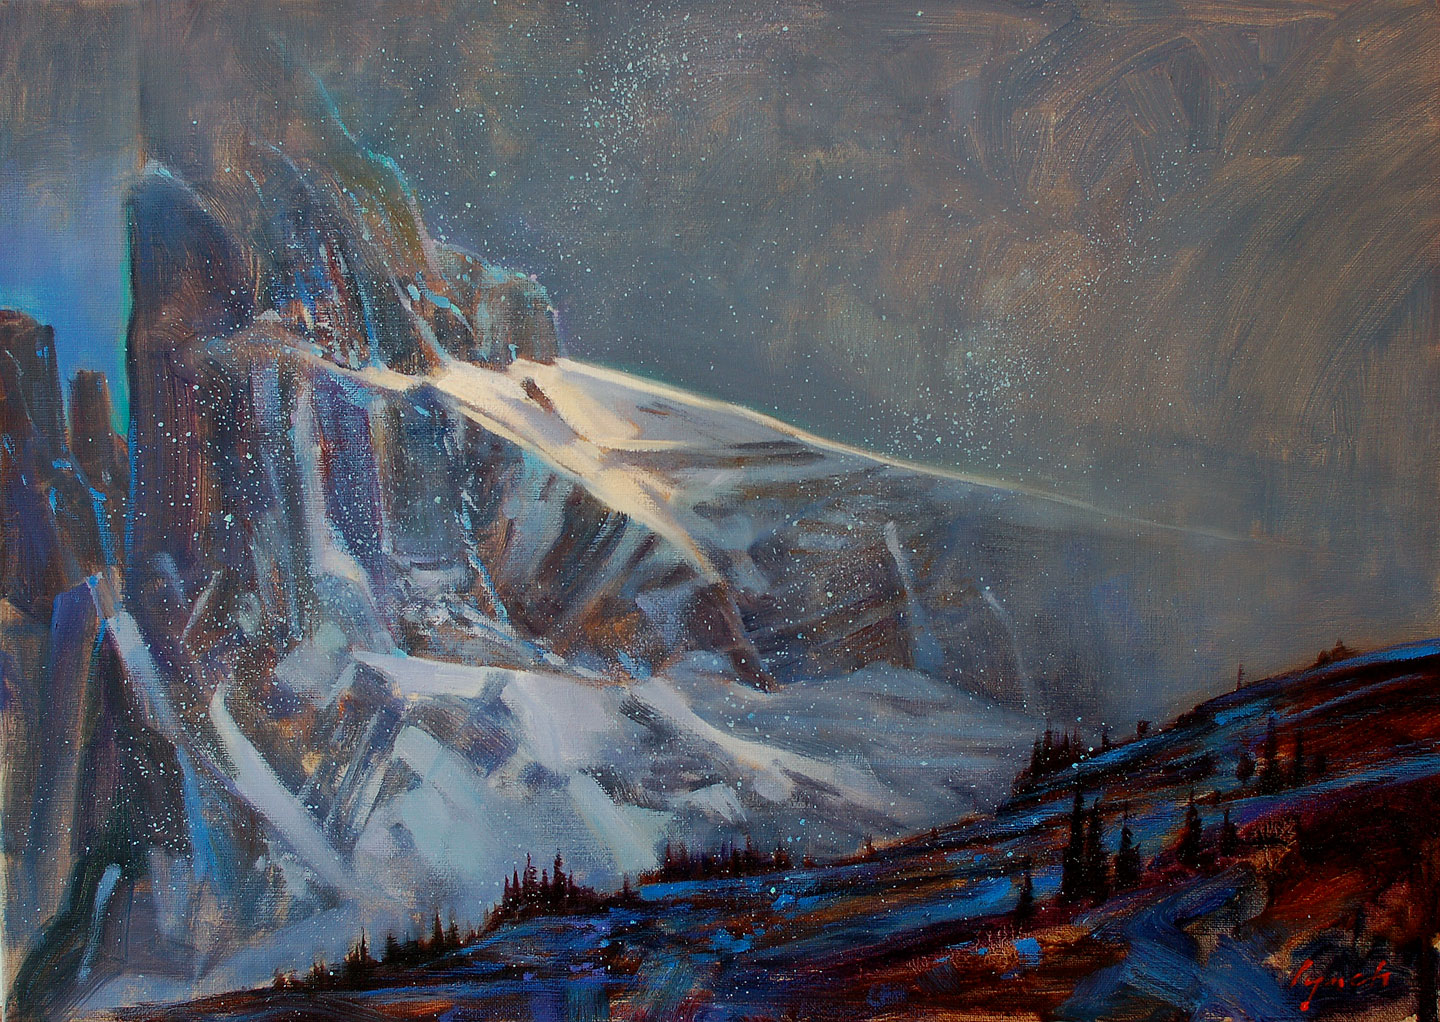 'Black Tuck, Early Snow' 16 X 20 in. oil on canvas 2014